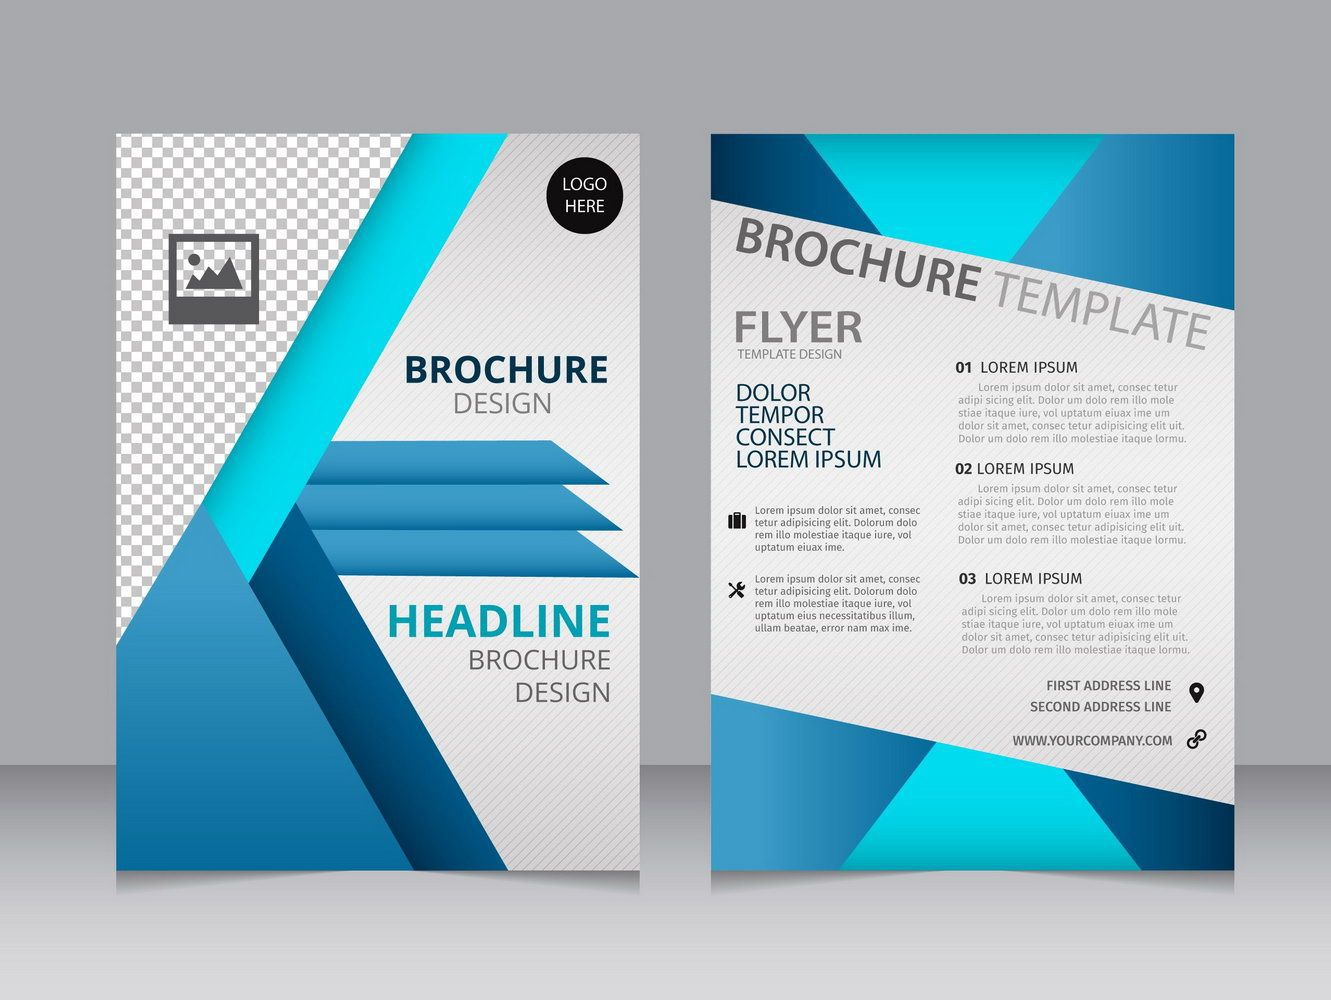 003 Awful Word Template Free Download Image  M Design Best Cv Microsoft 2019Full